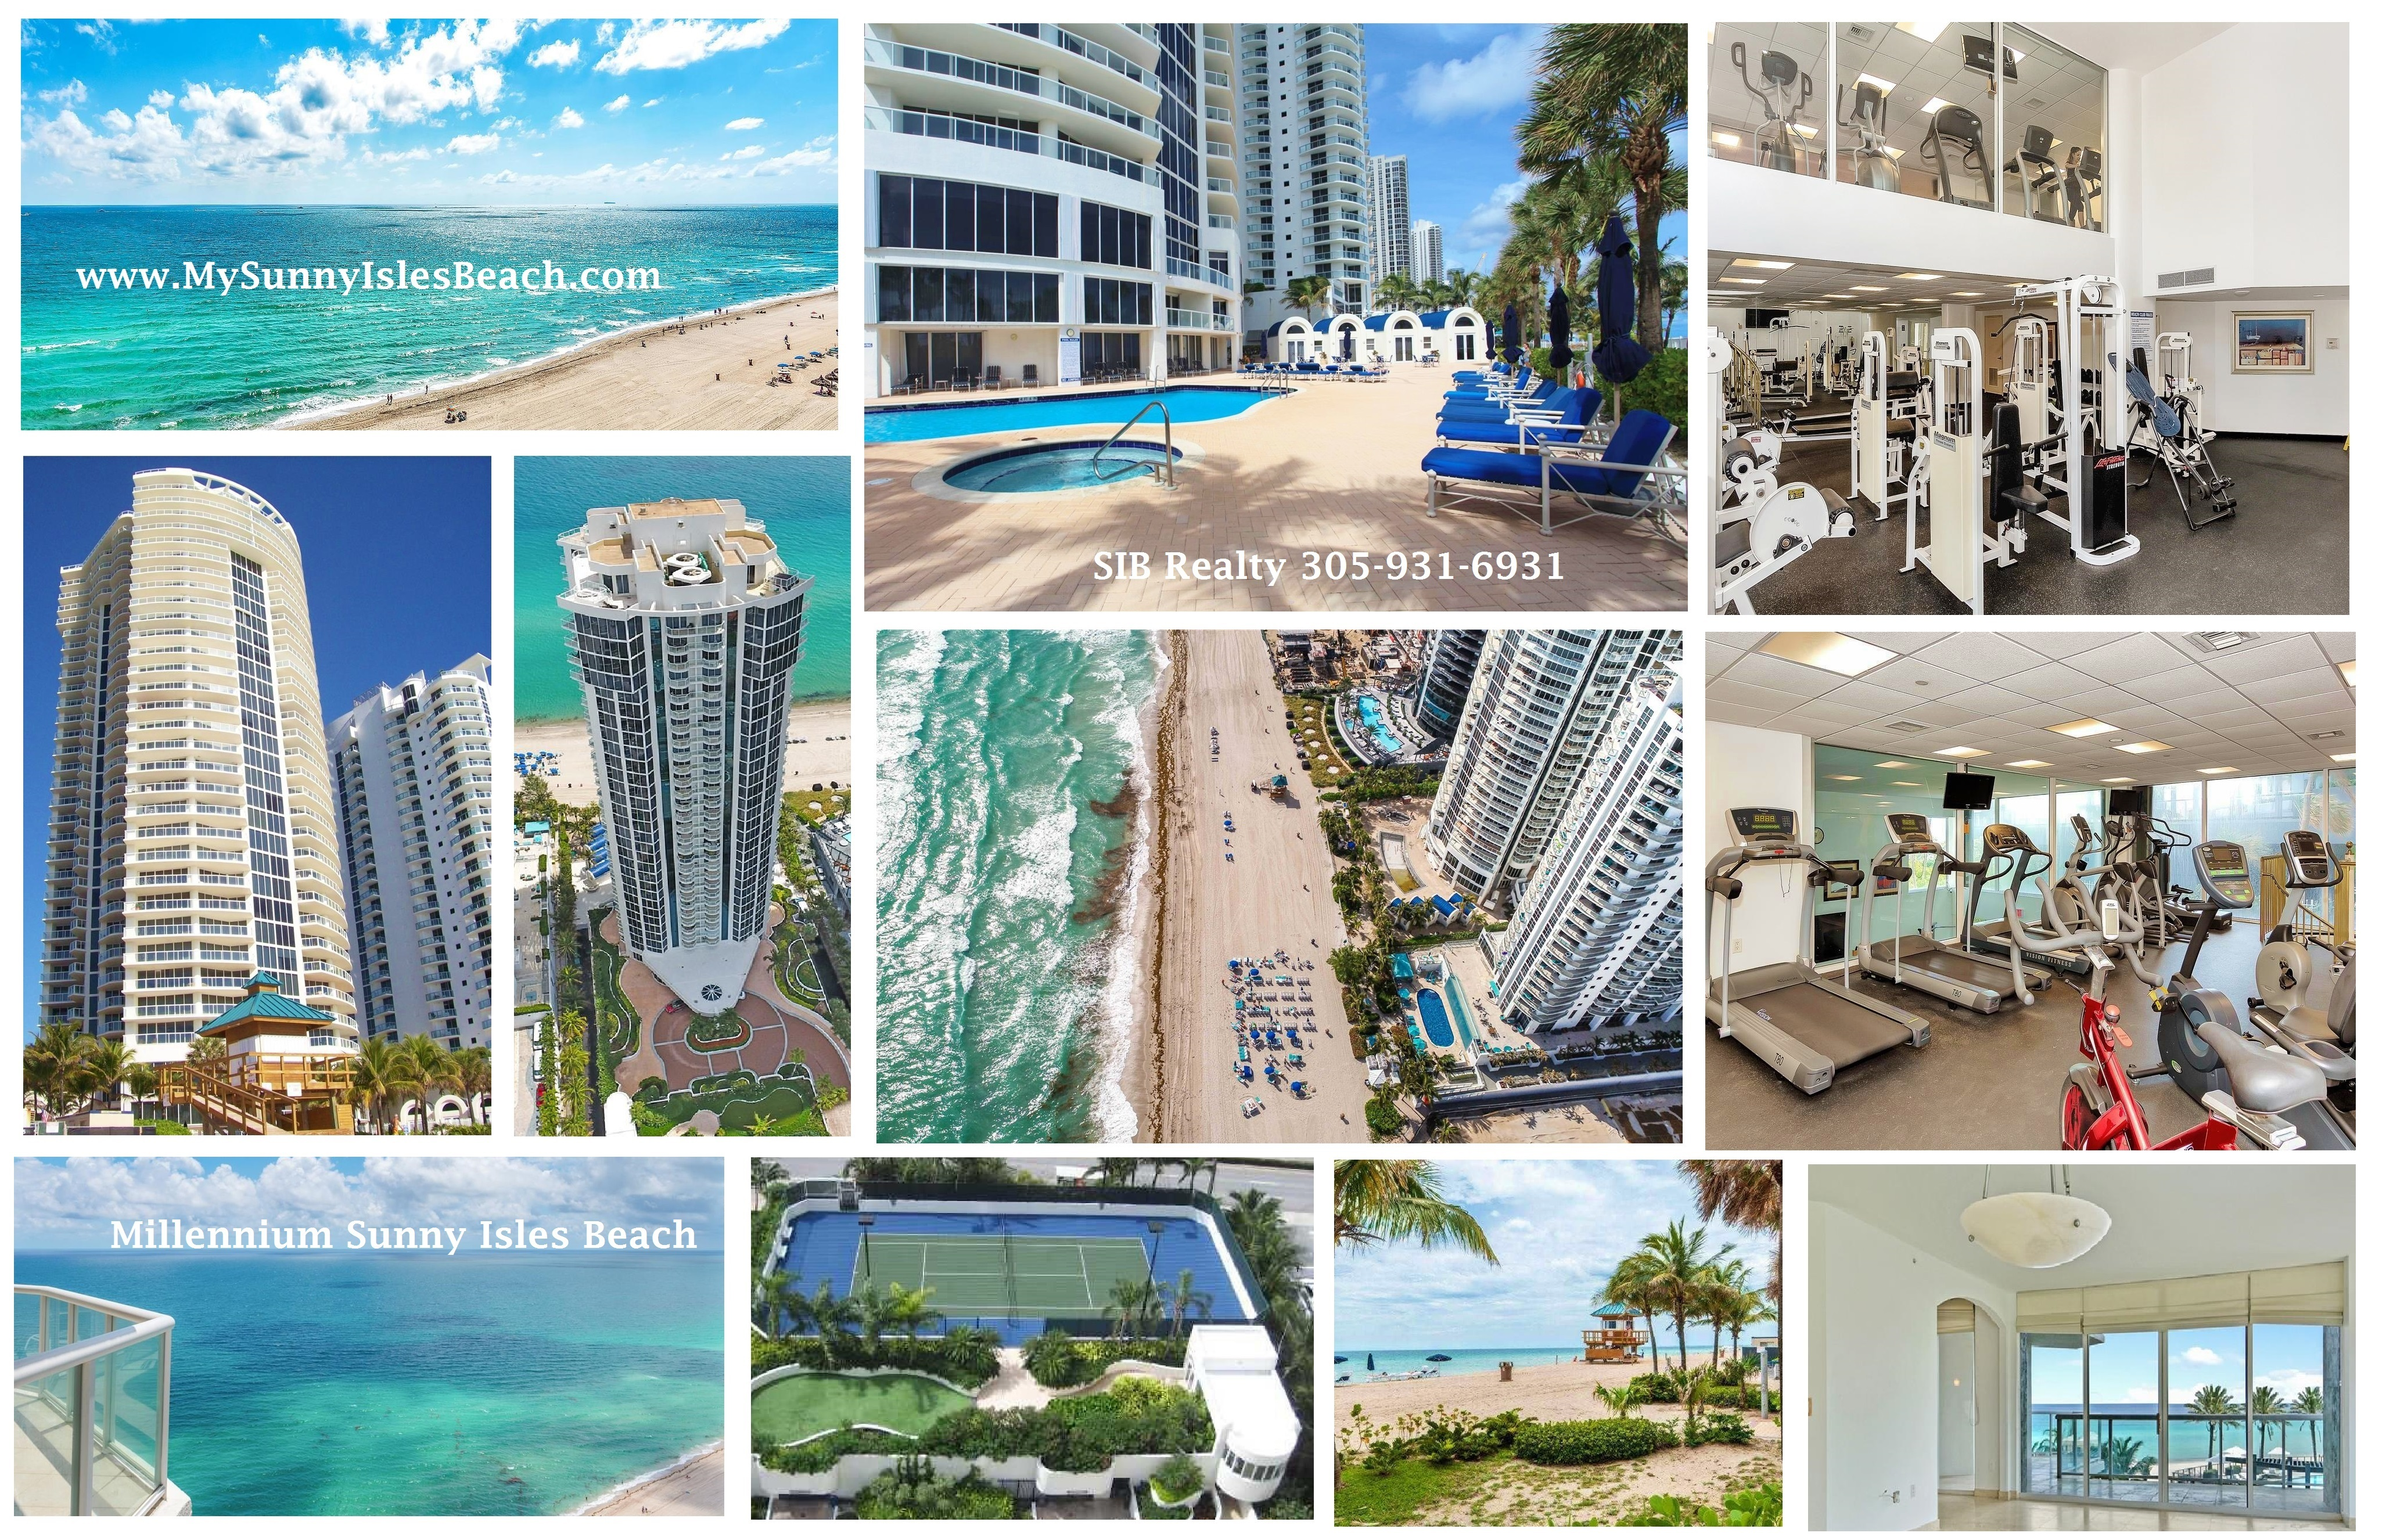 Rent, Sell, Buy condo Millennium Sunny Isles Beach with Valeria Mola